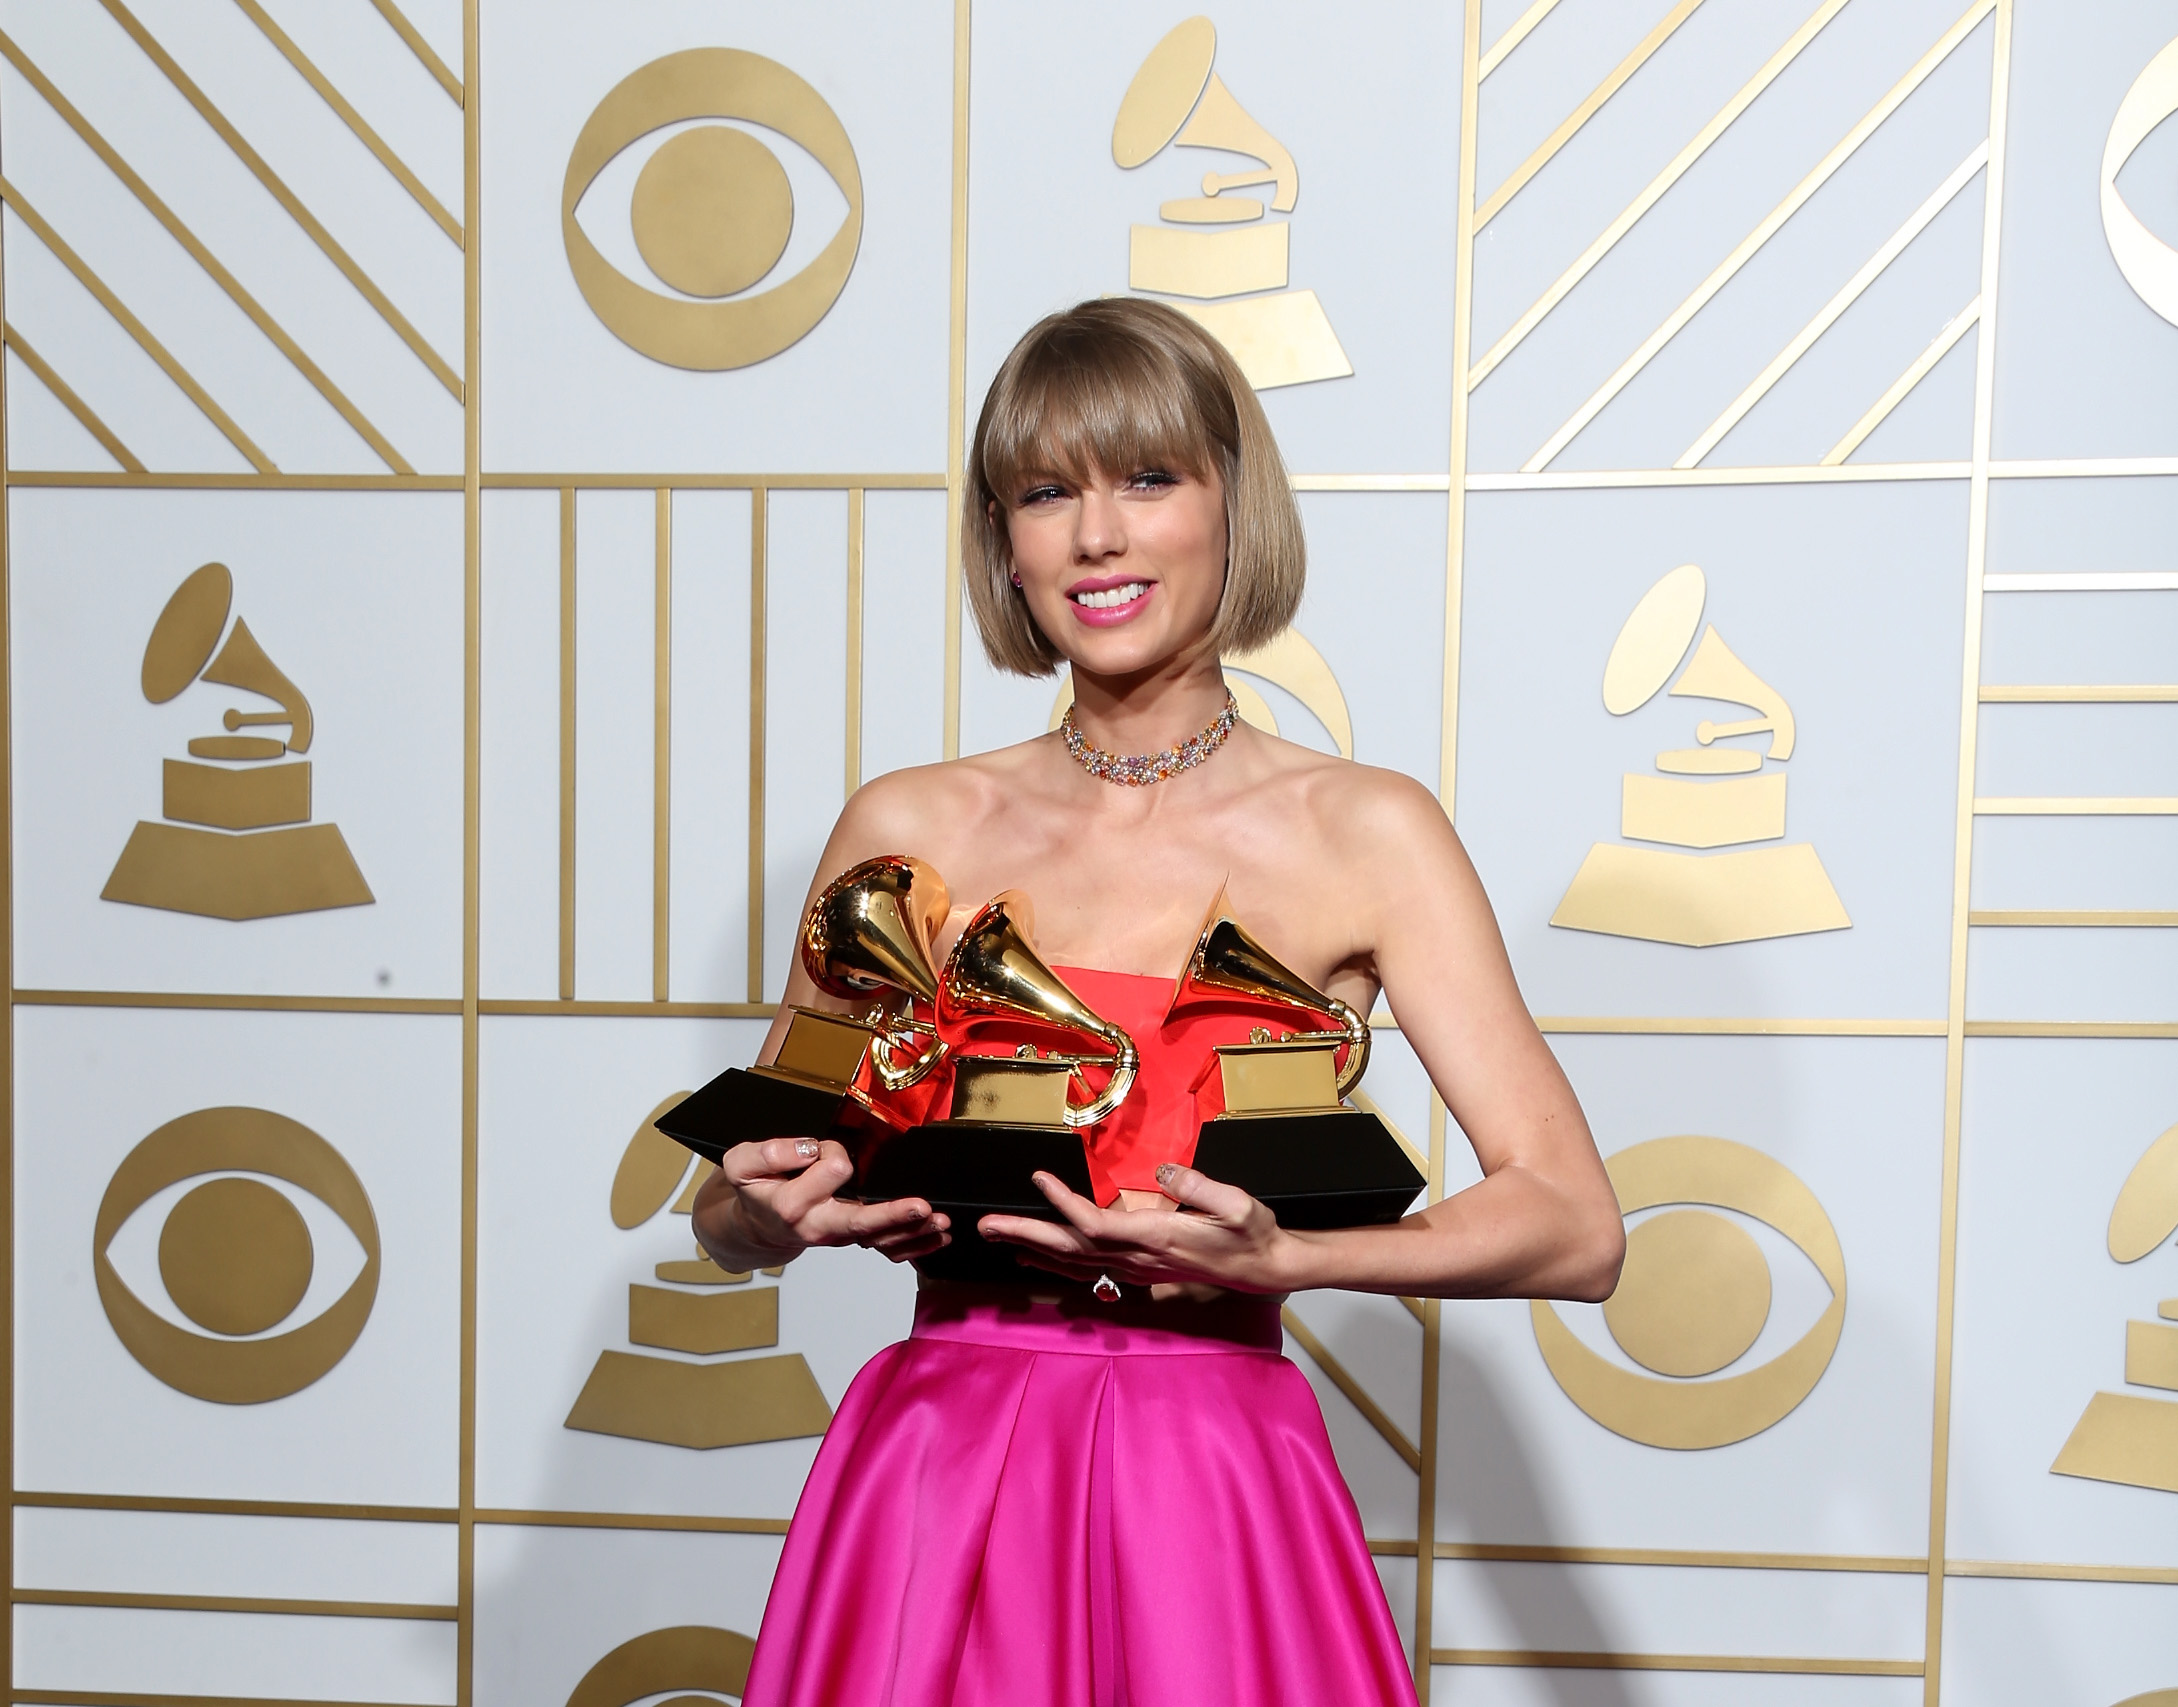 """LOS ANGELES, CA - FEBRUARY 15: Singer Taylor Swift, winner of the awards for Album of the Year and Best Pop Album for """"1989"""" and Best Music Video for """"Bad Blood,"""" poses in the press room during The 58th GRAMMY Awards at Staples Center on February 15, 2016 in Los Angeles, California. (Photo by Frederick M. Brown/Getty Images for NARAS)"""